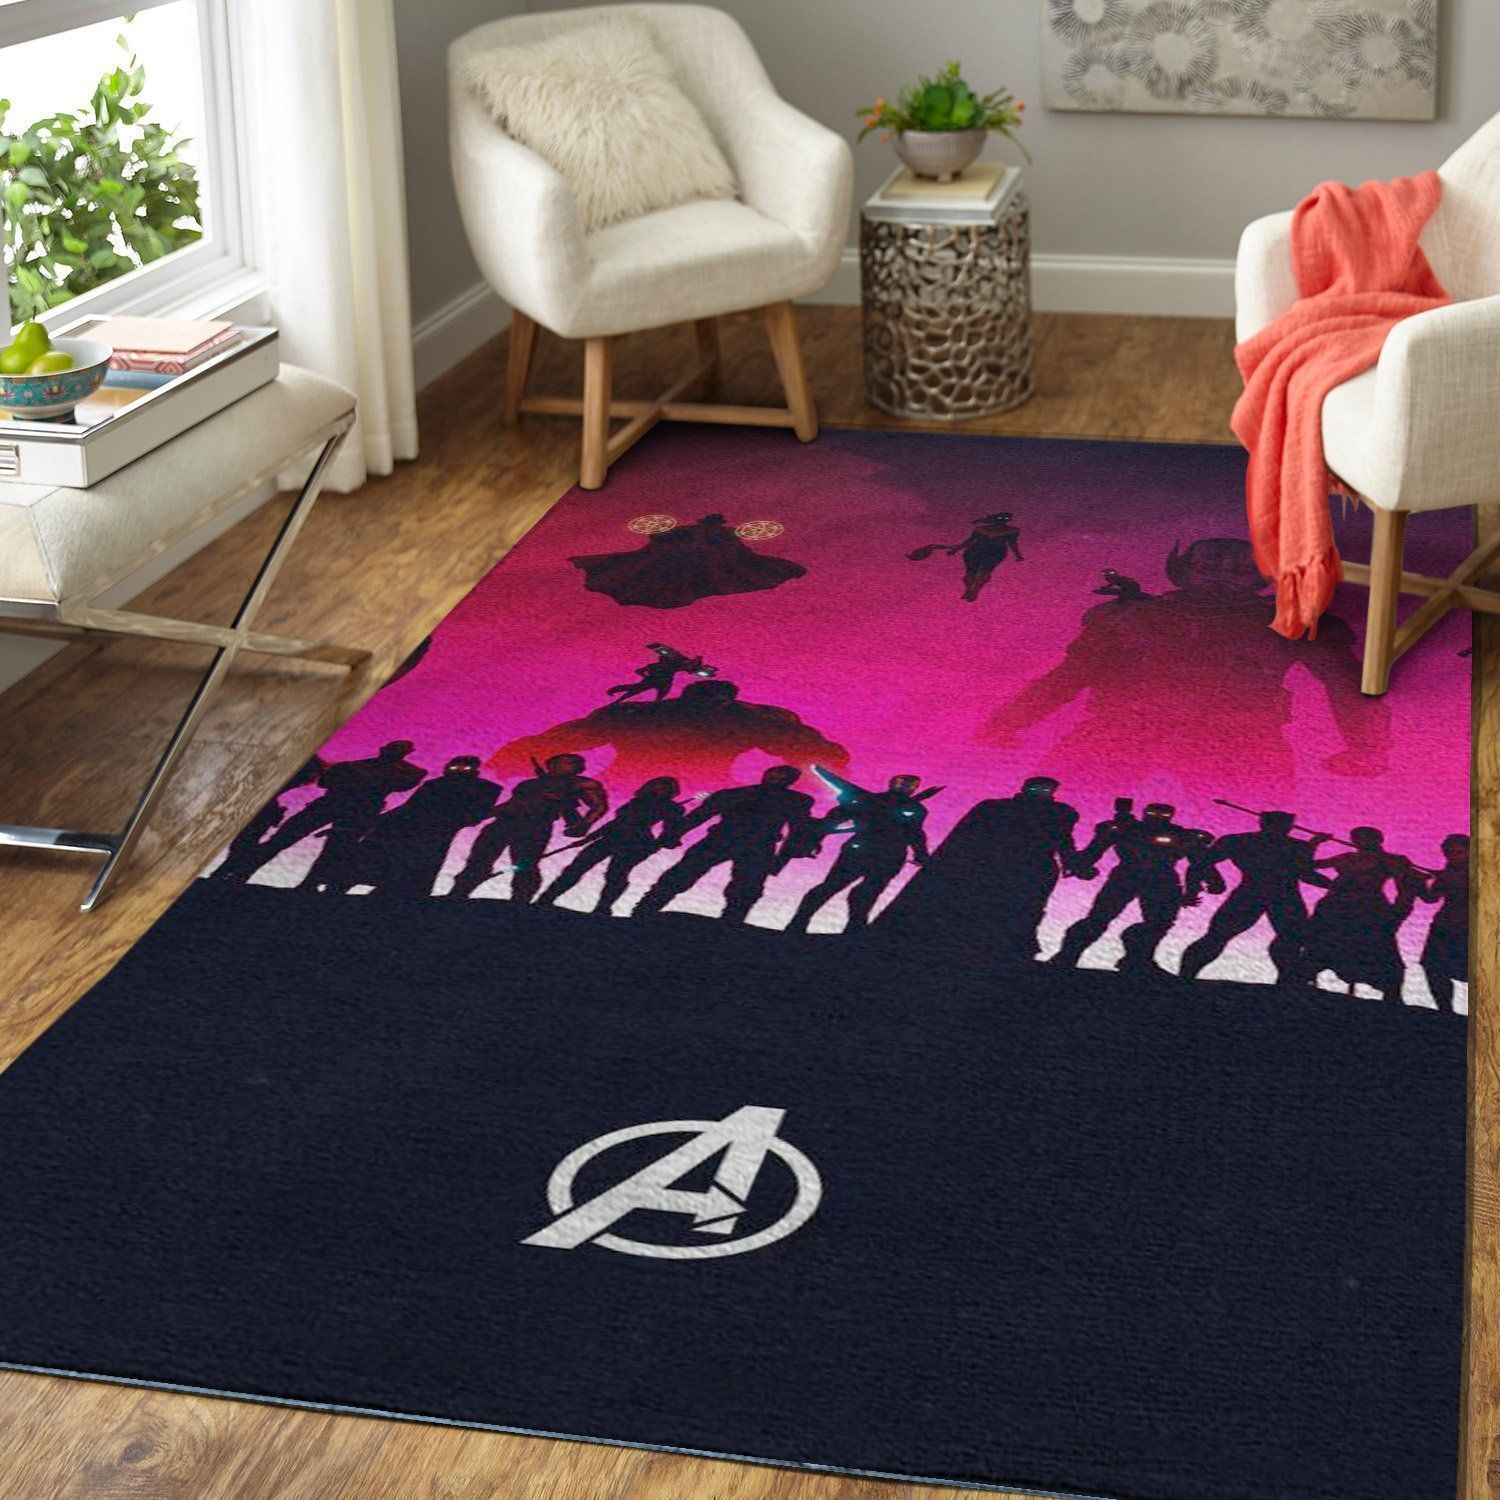 Avengers Area Rugs / Marvel Superhero Movie Living Room Carpet, Custom Floor Decor